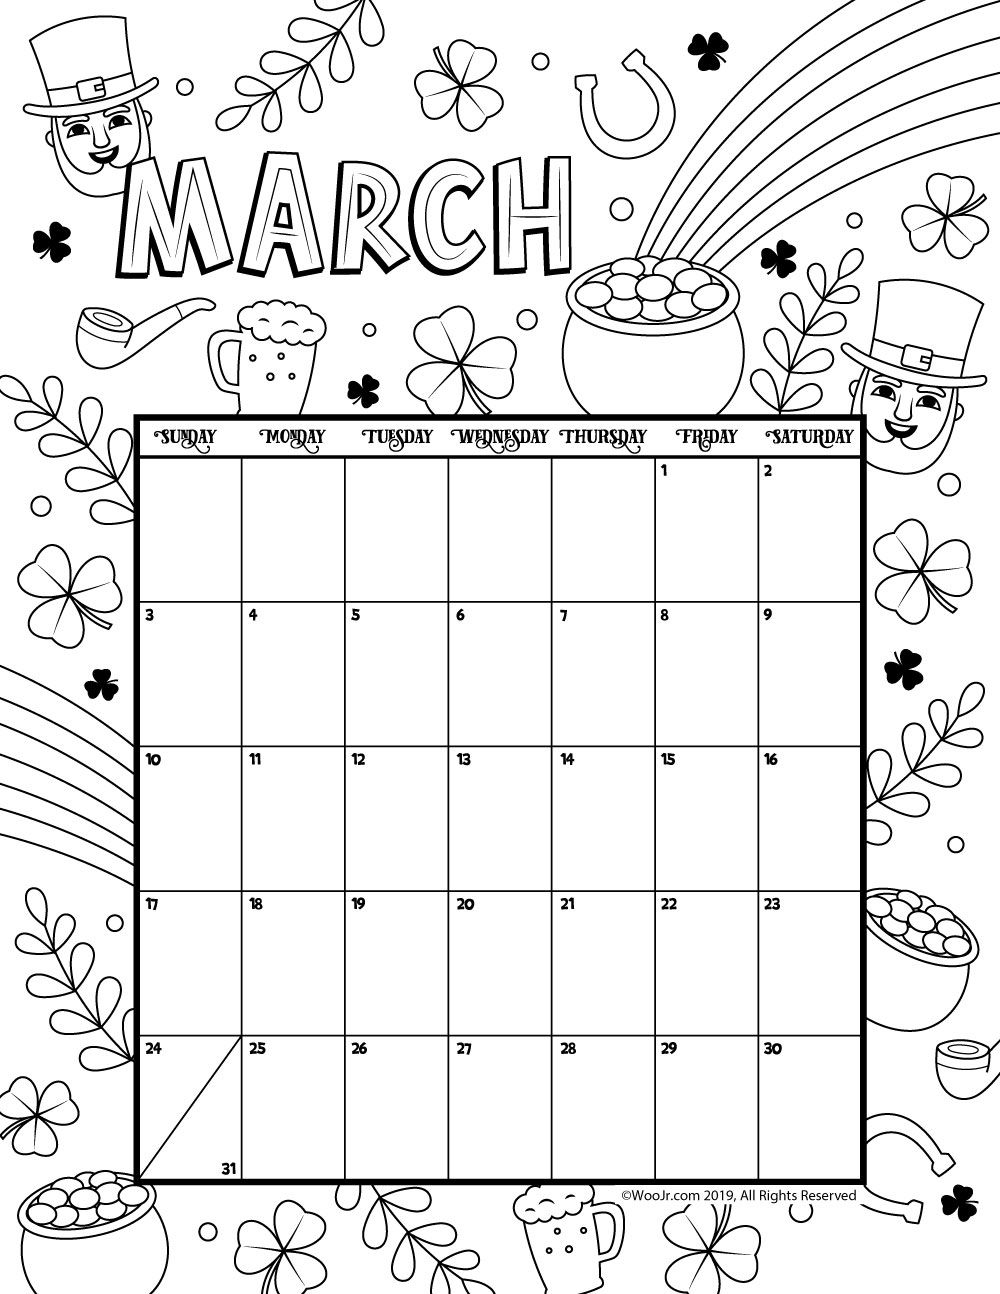 Coloring Calendar For Adults 2019 With March Calender Pinterest